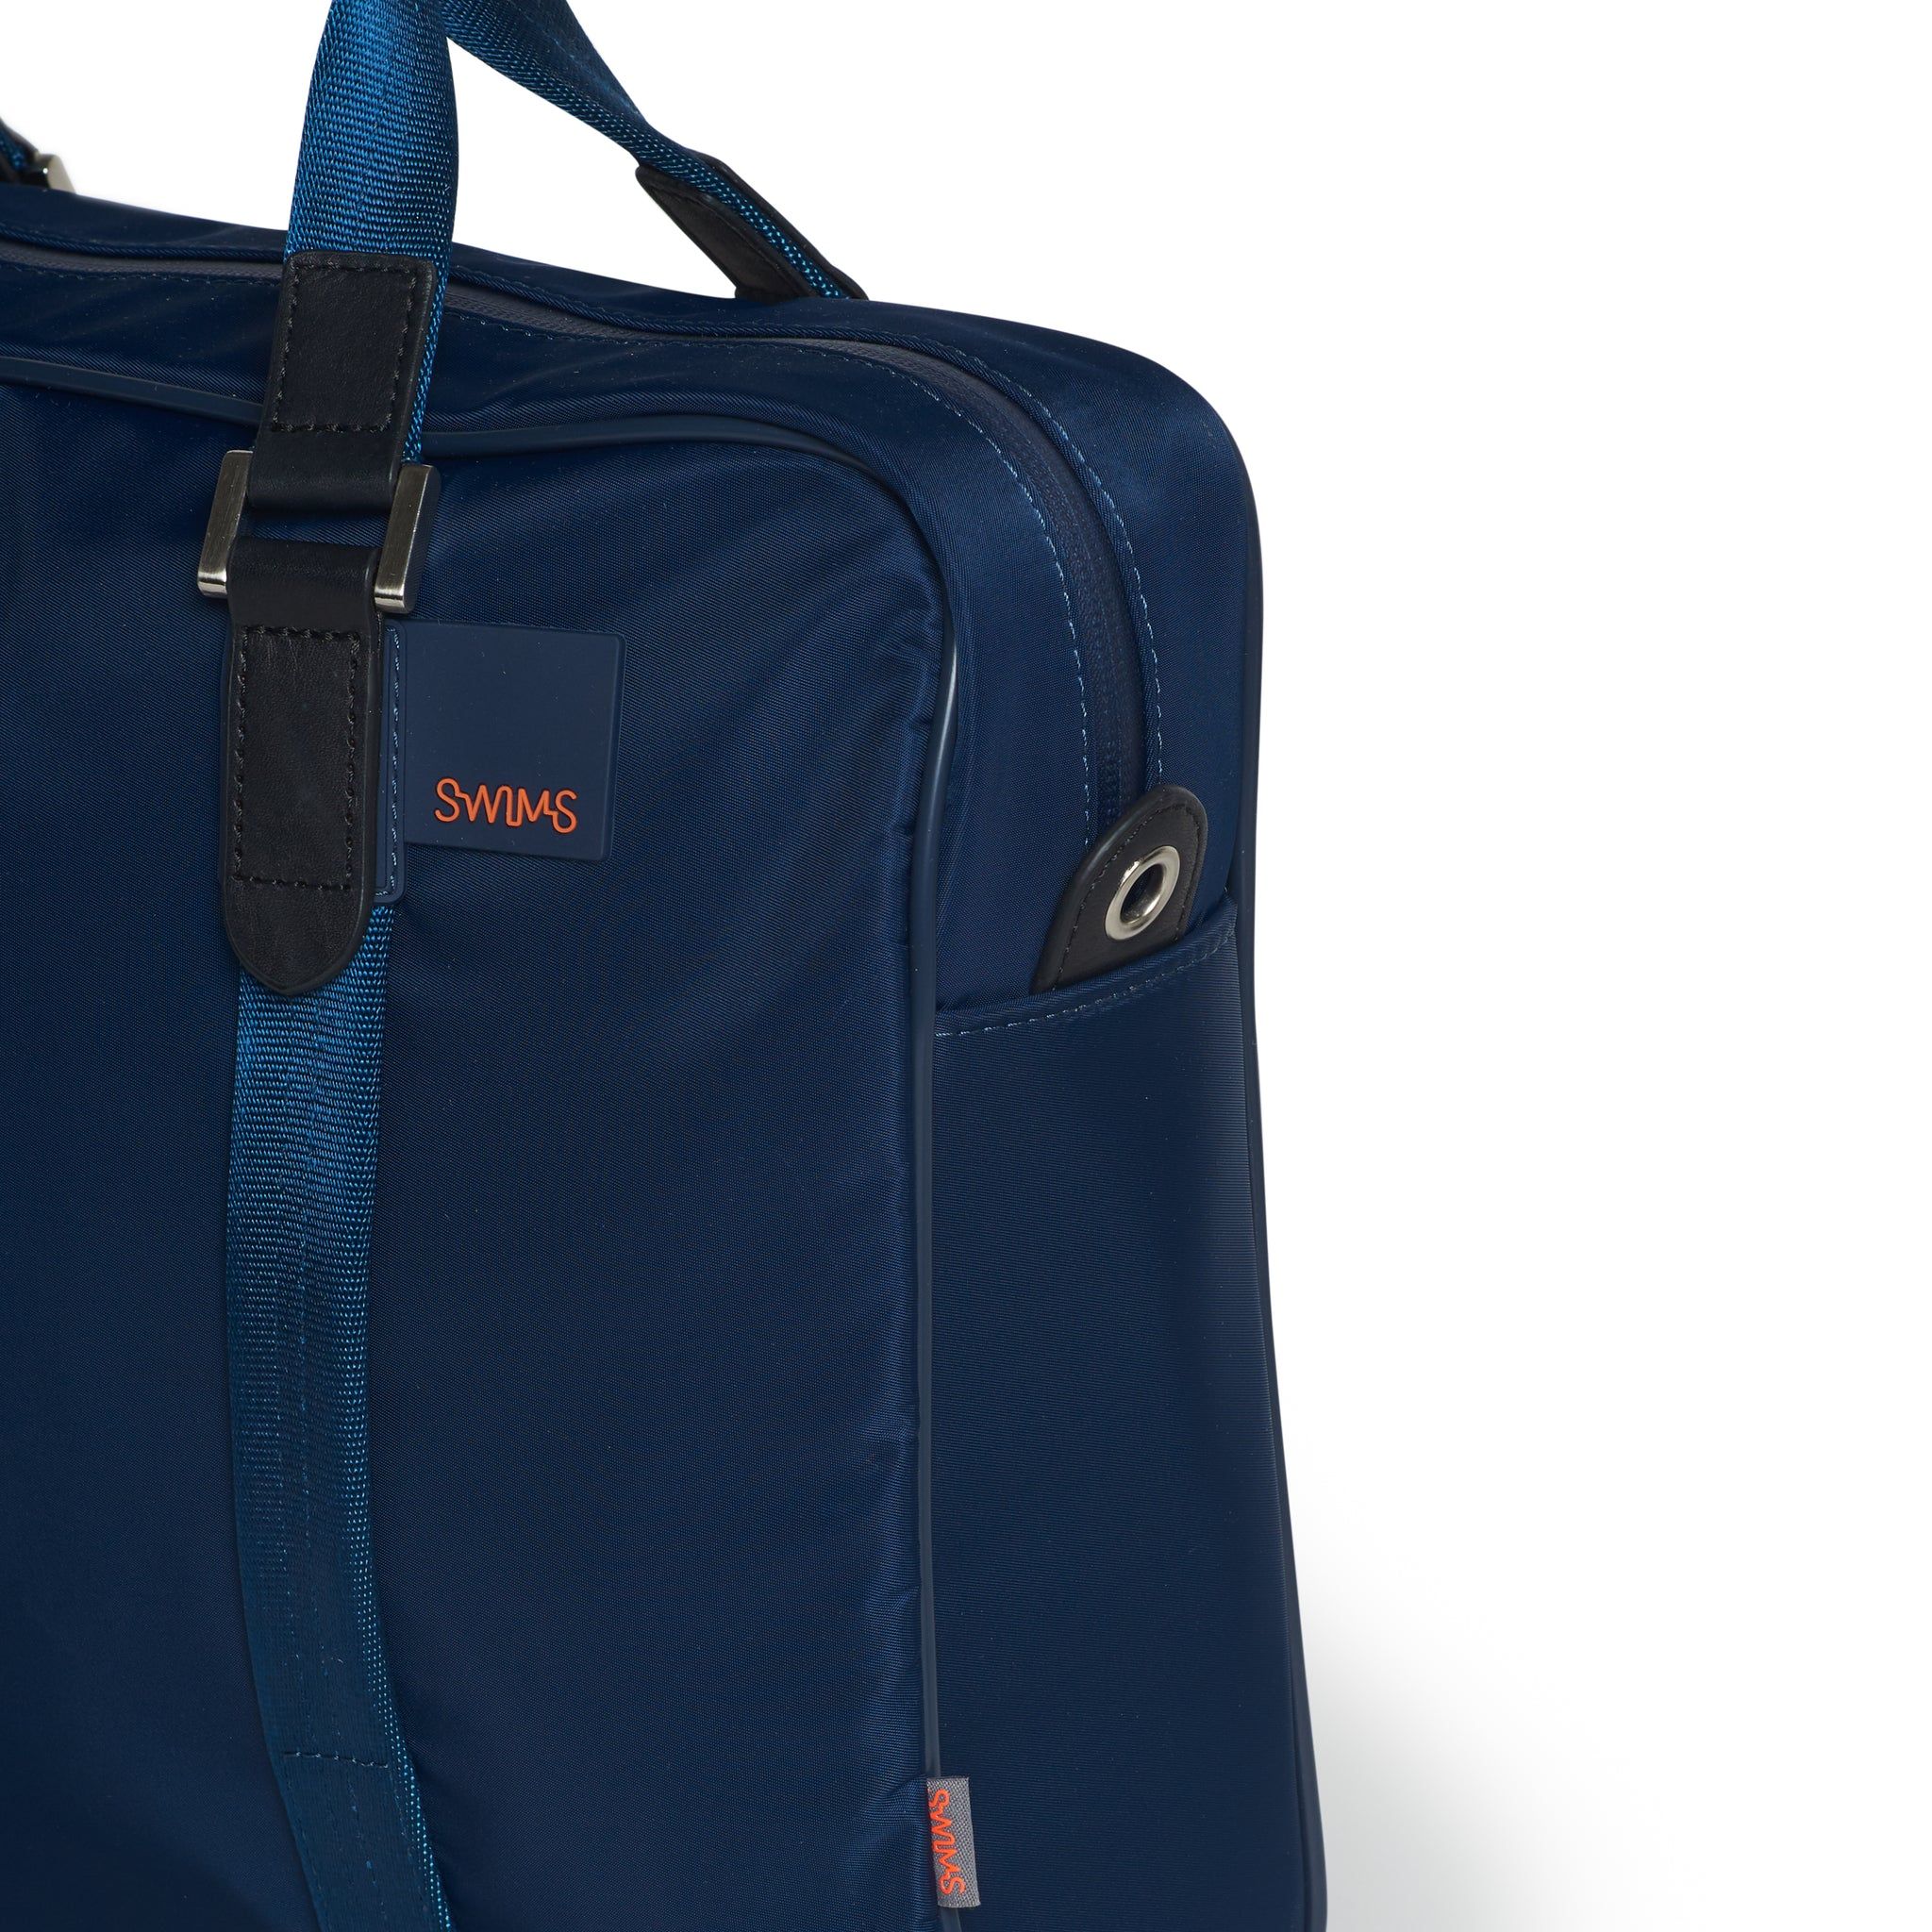 Bolsa Attaché Navy